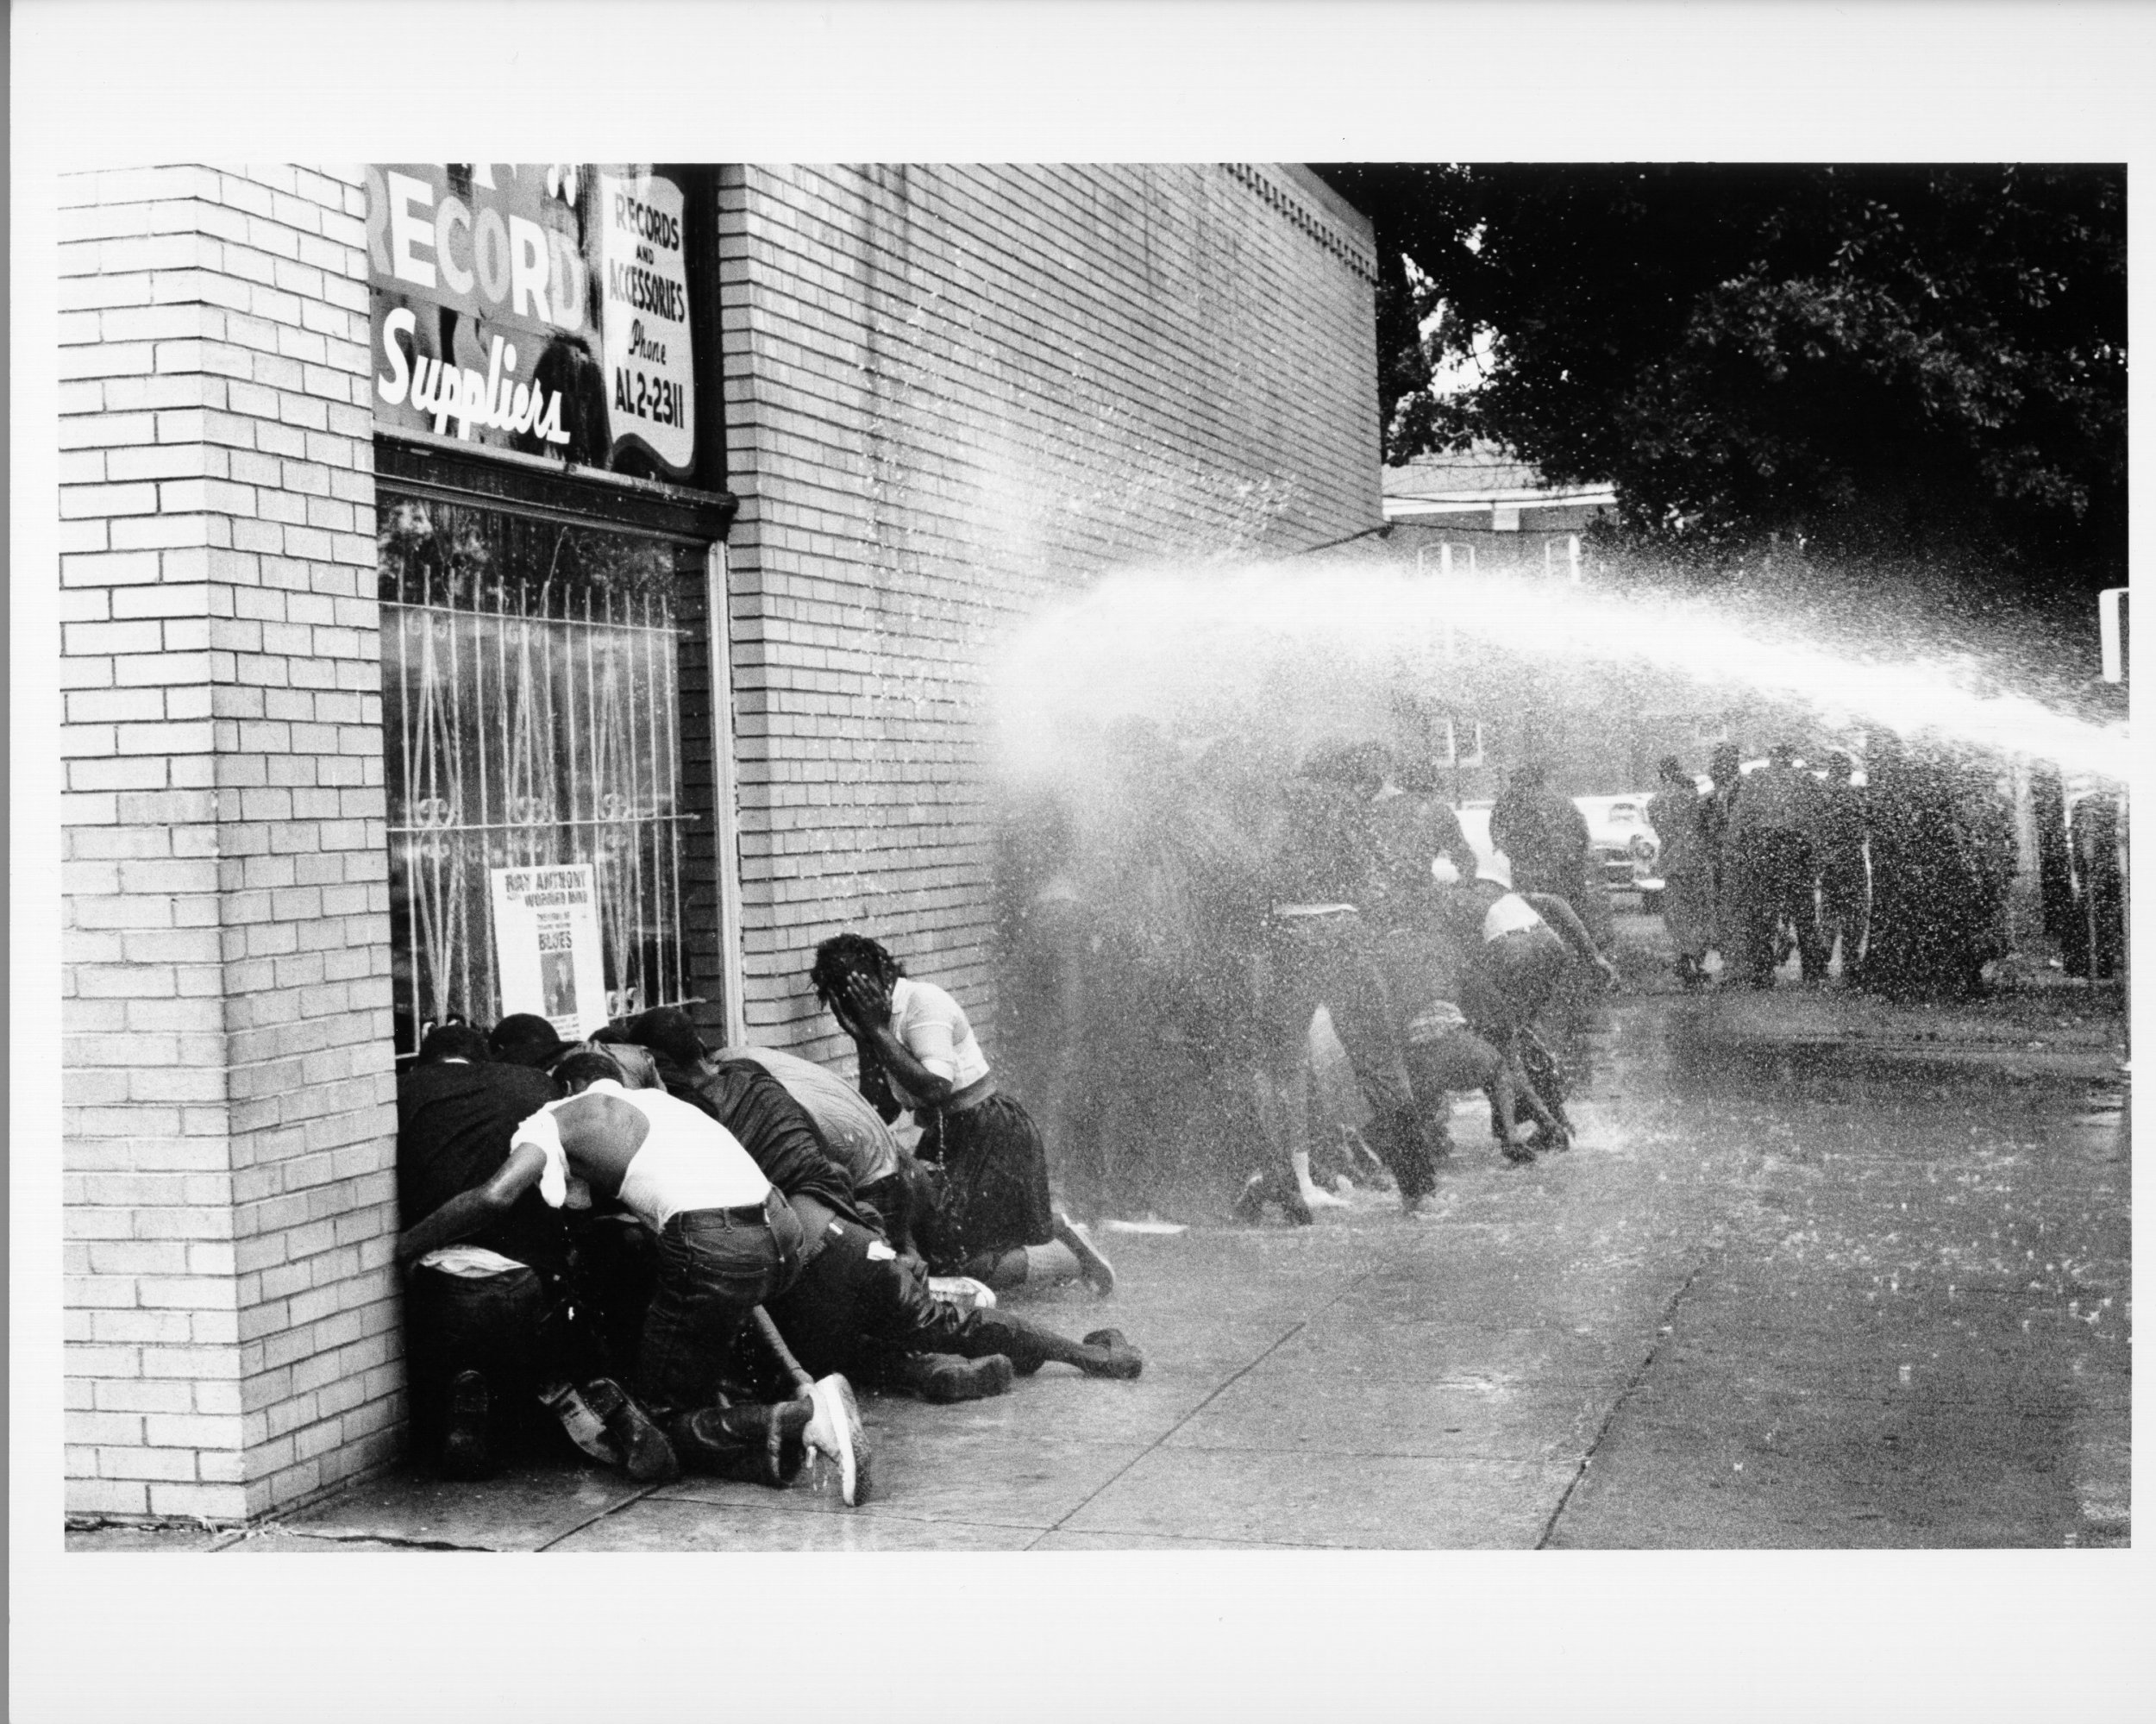 Photographs: Martin Luther King Jr.'s America